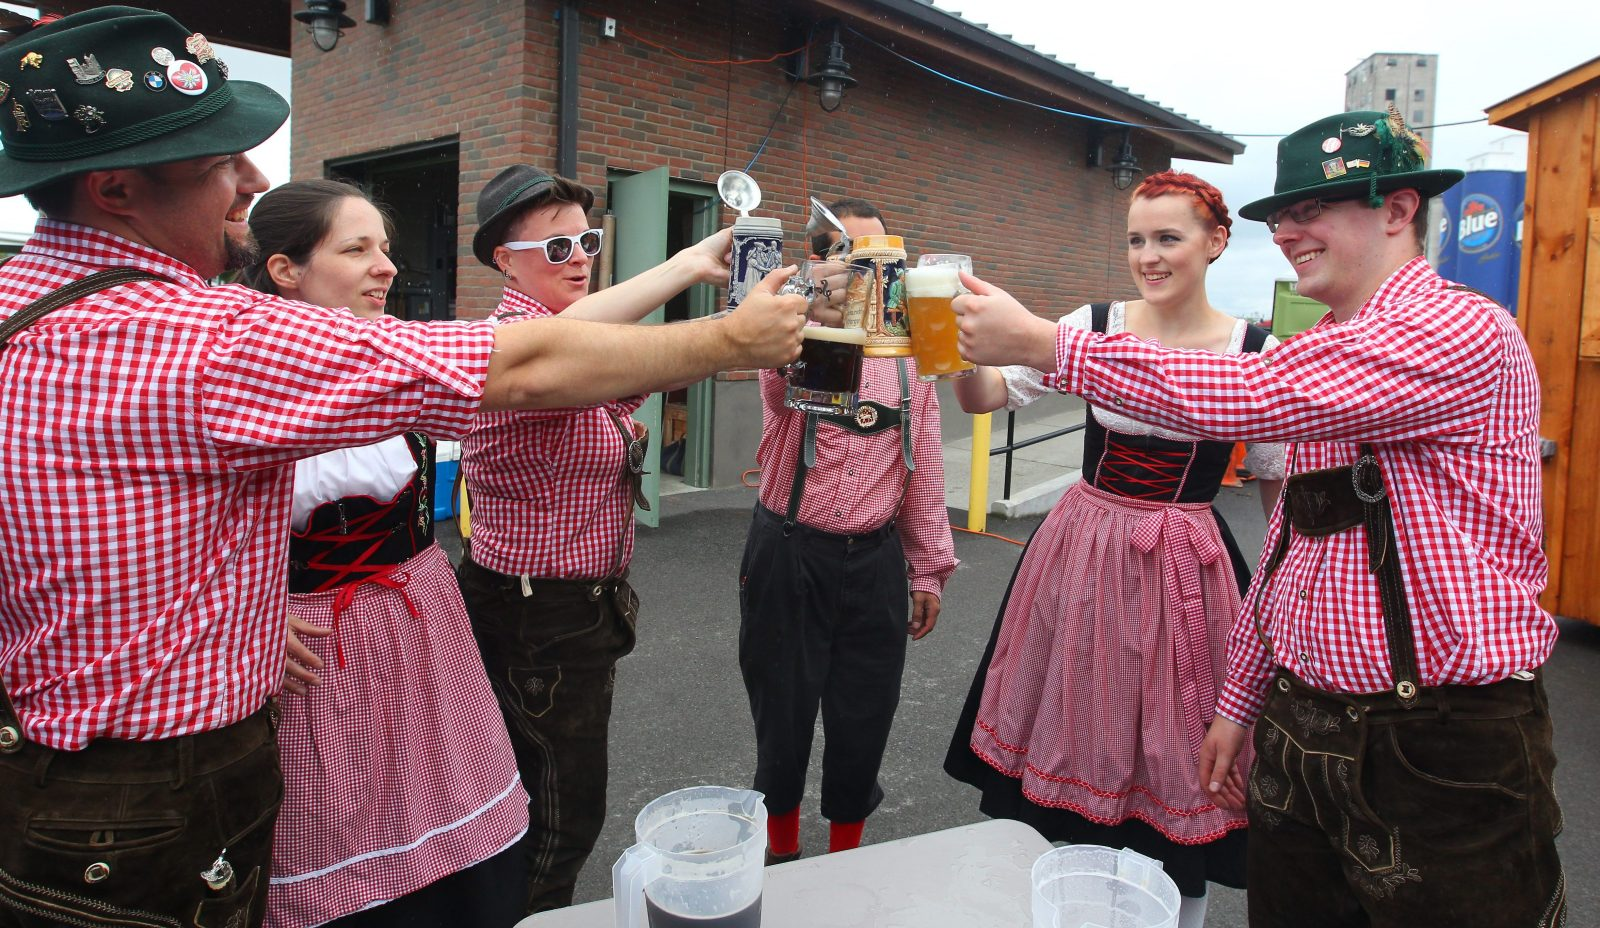 Members of the German-American Musicians Association raise a glass during Wurstfest in 2015. The festival returns to River Fest Park on June 26. (Mark Mulville/Buffalo News file photo)